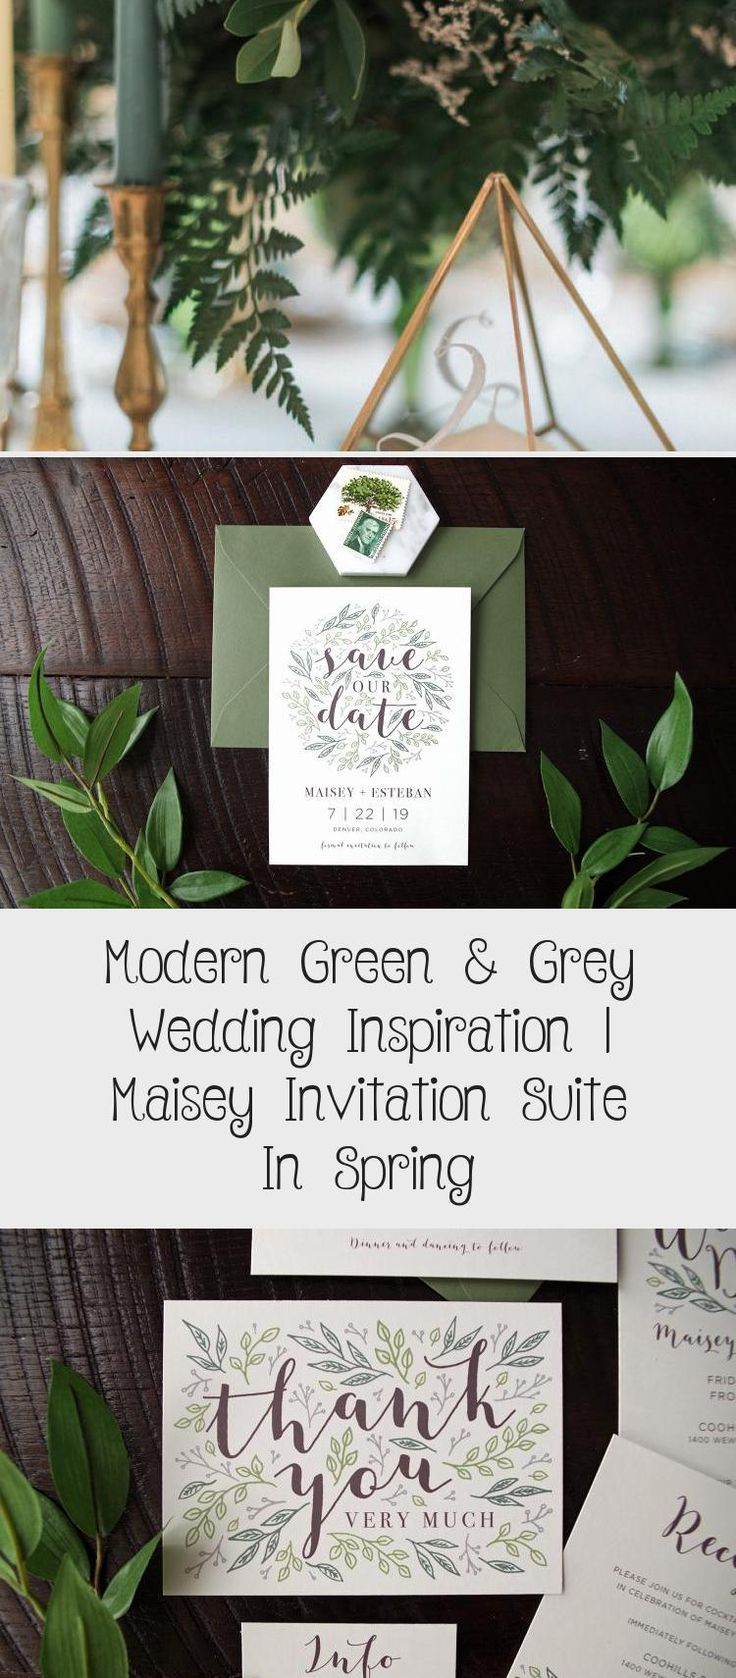 Botanical illustration Green & Grey Wedding inspiration perfect for a modern garden wedding or an urban wedding dripping with greenery. Palette of greens - emerald and sage. Earthy and organic with clean, modern touches. Bridesmaid dresses #LavenderBridesmaidDresses #DifferentBridesmaidDresses #MixAndMatchBridesmaidDresses #AfricanBridesmaidDresses #GreyBridesmaidDresses